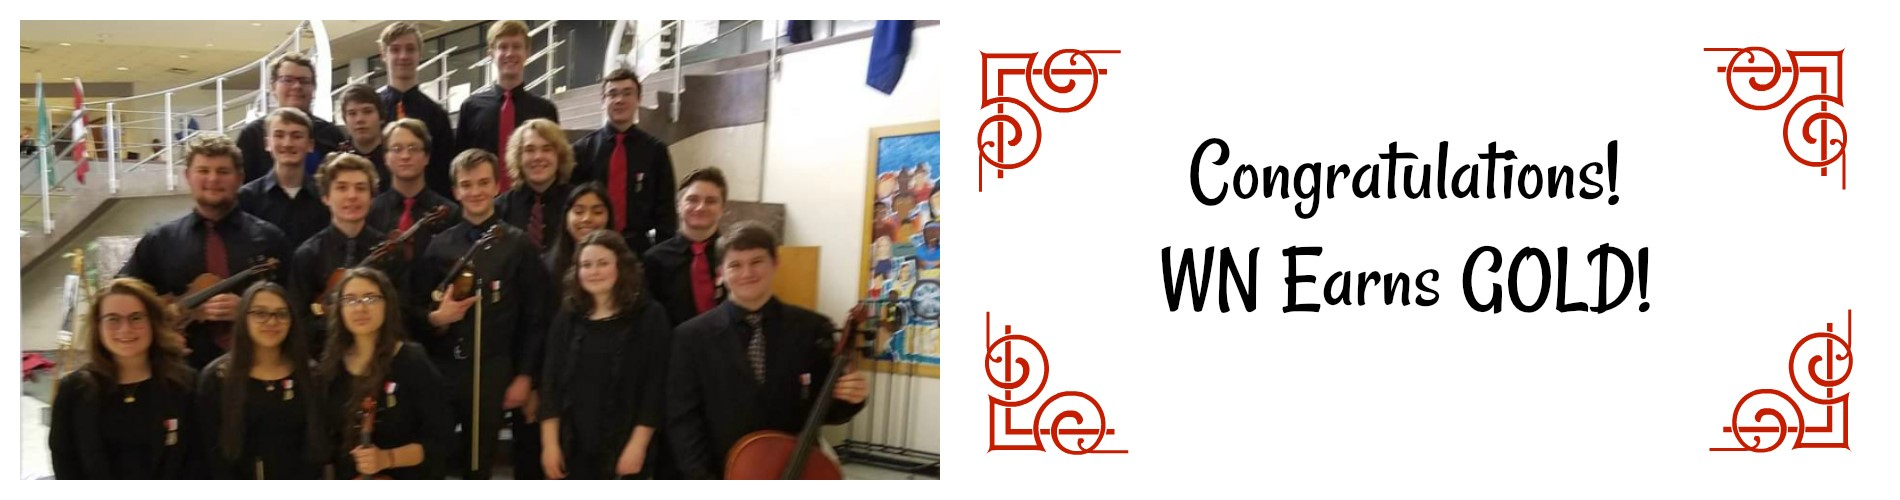 String members earn gold at contest.